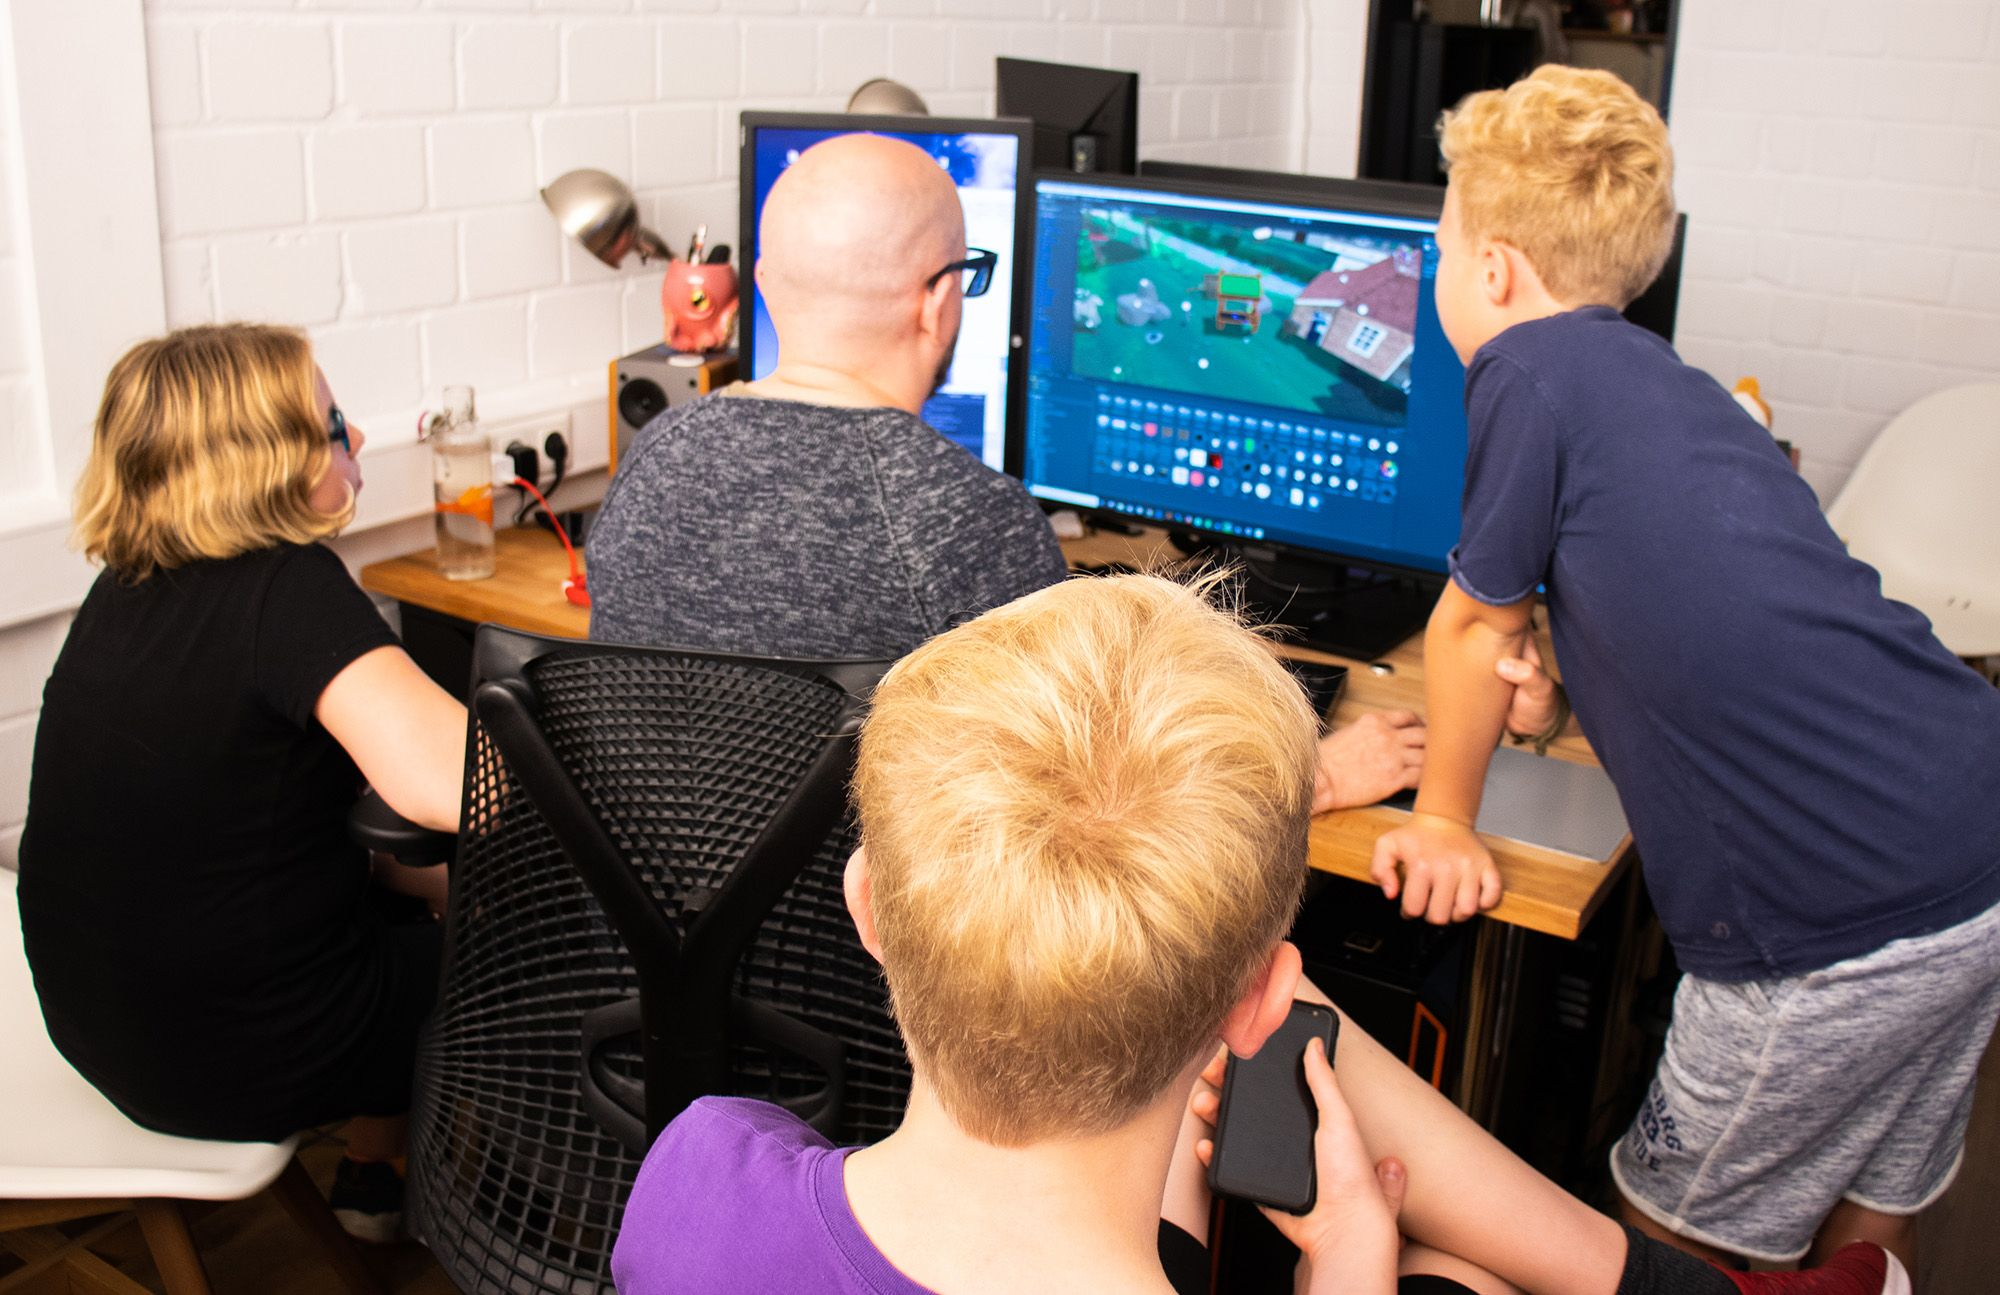 Gamedesign mit Kindern / Gamedesign Ostfriesland / Tim Bruns - Werbung & so